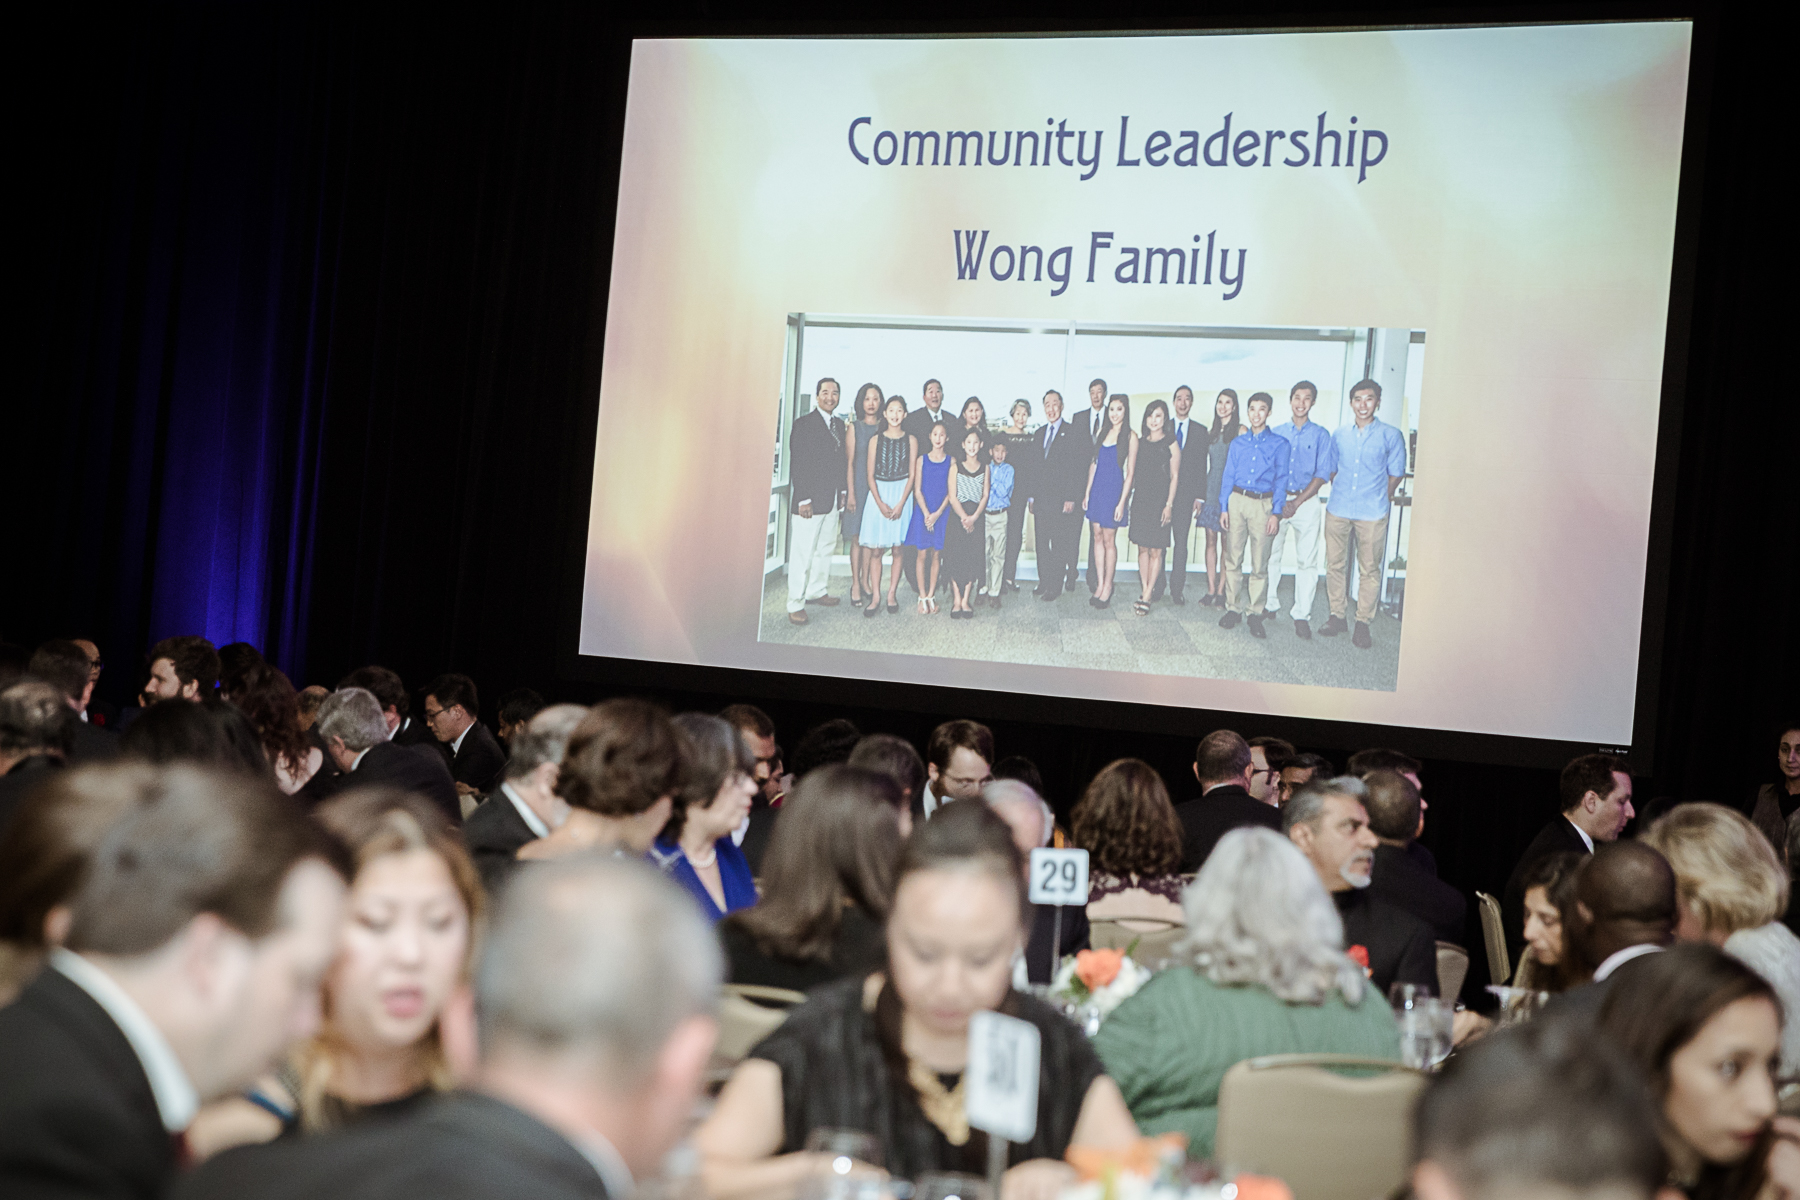 Community Leadership Award